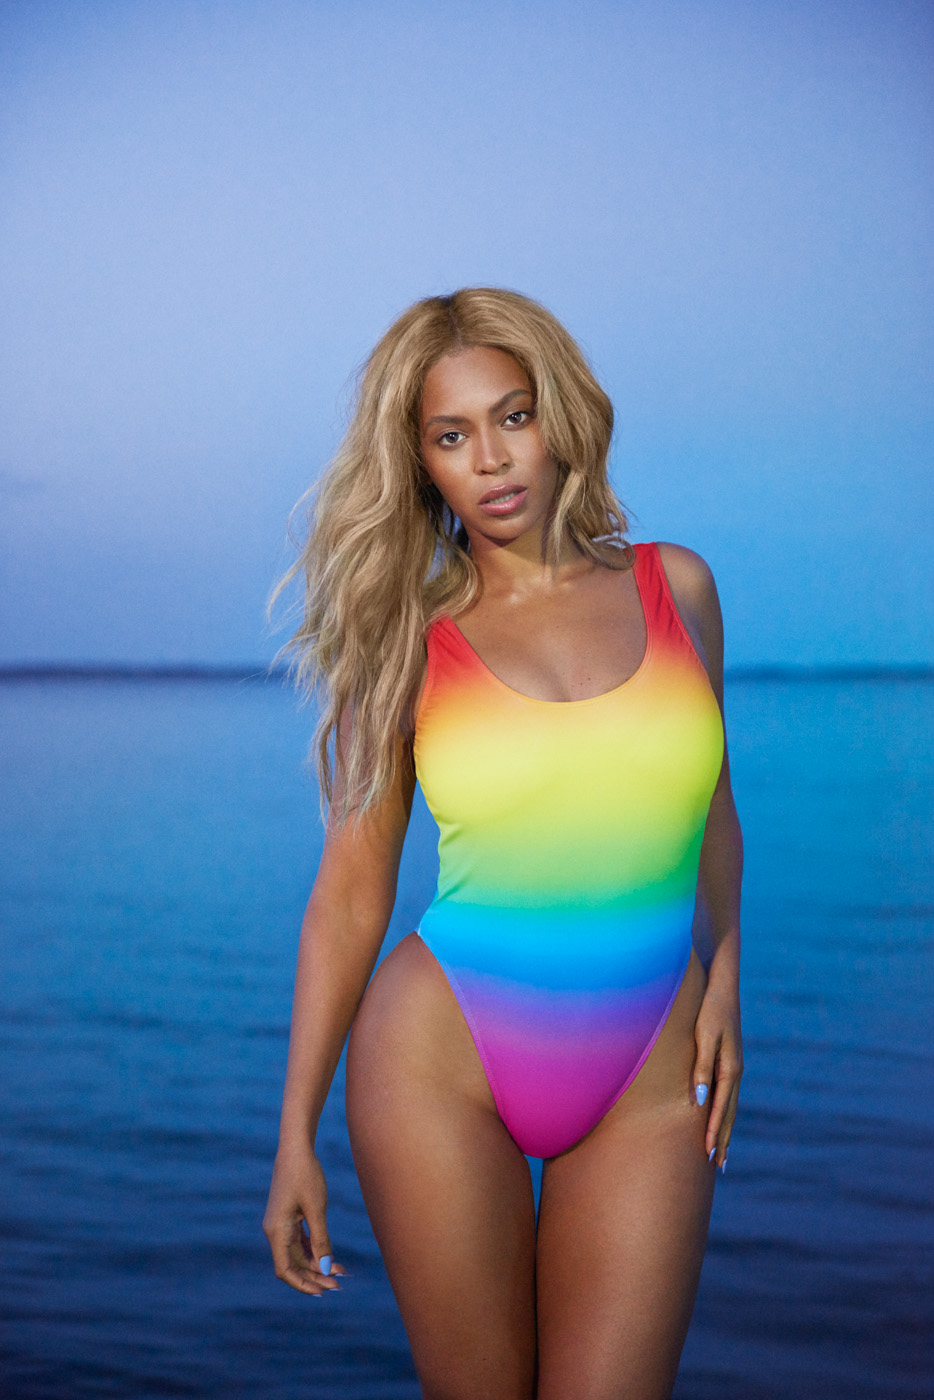 Beyonce, Beat, Issue 16, October 19, 2015.